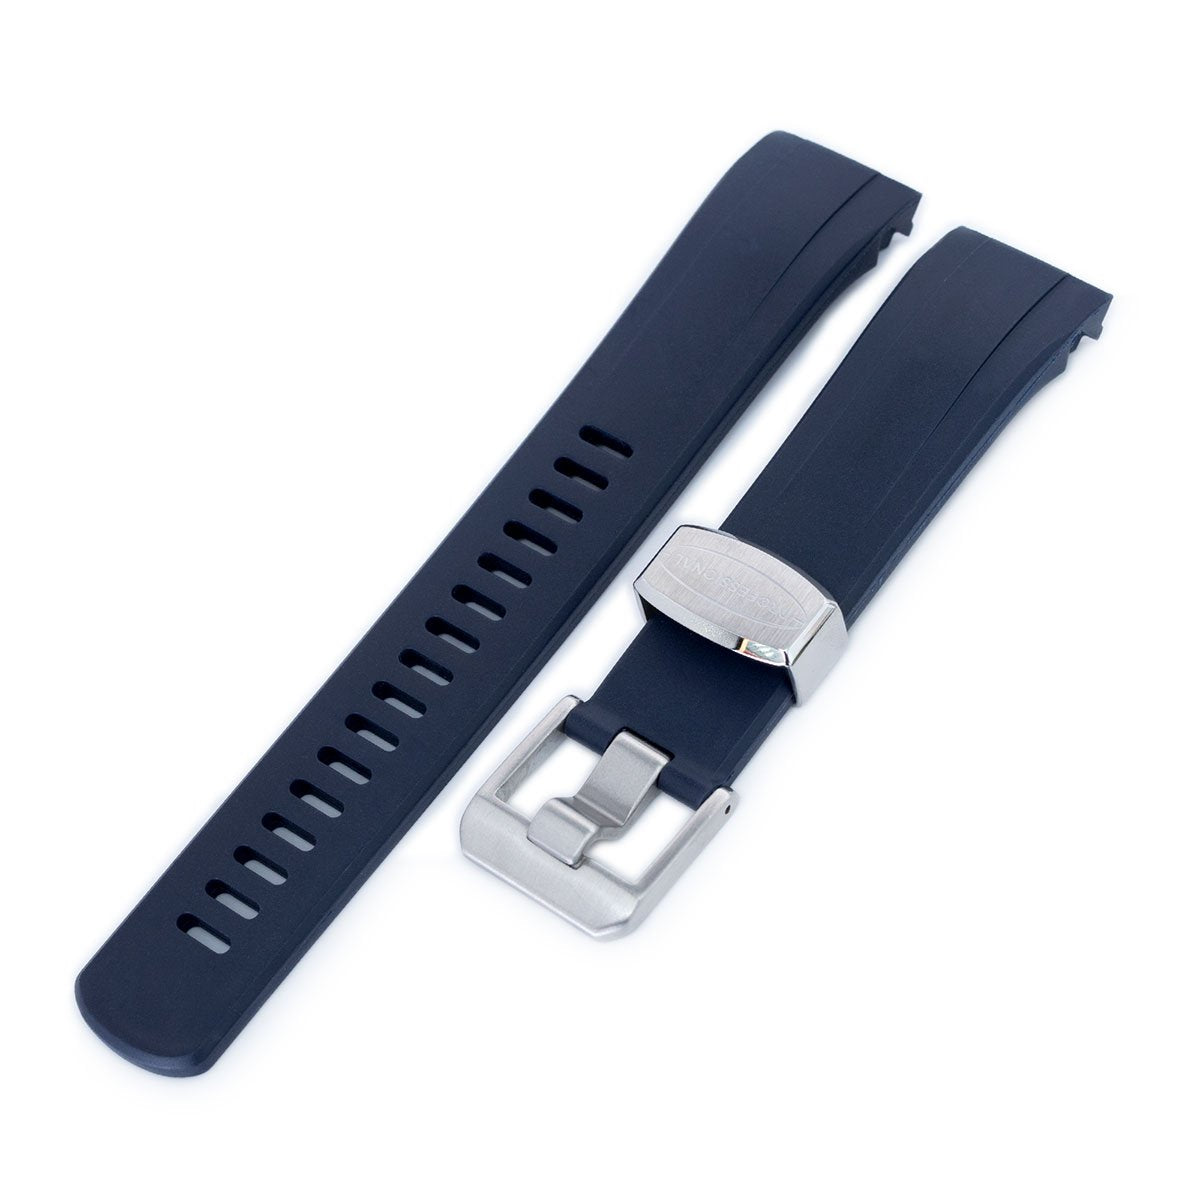 22mm Crafter Blue Dark Blue Rubber Curved Lug Watch Strap for Seiko Samurai SRPB51 Strapcode Watch Bands